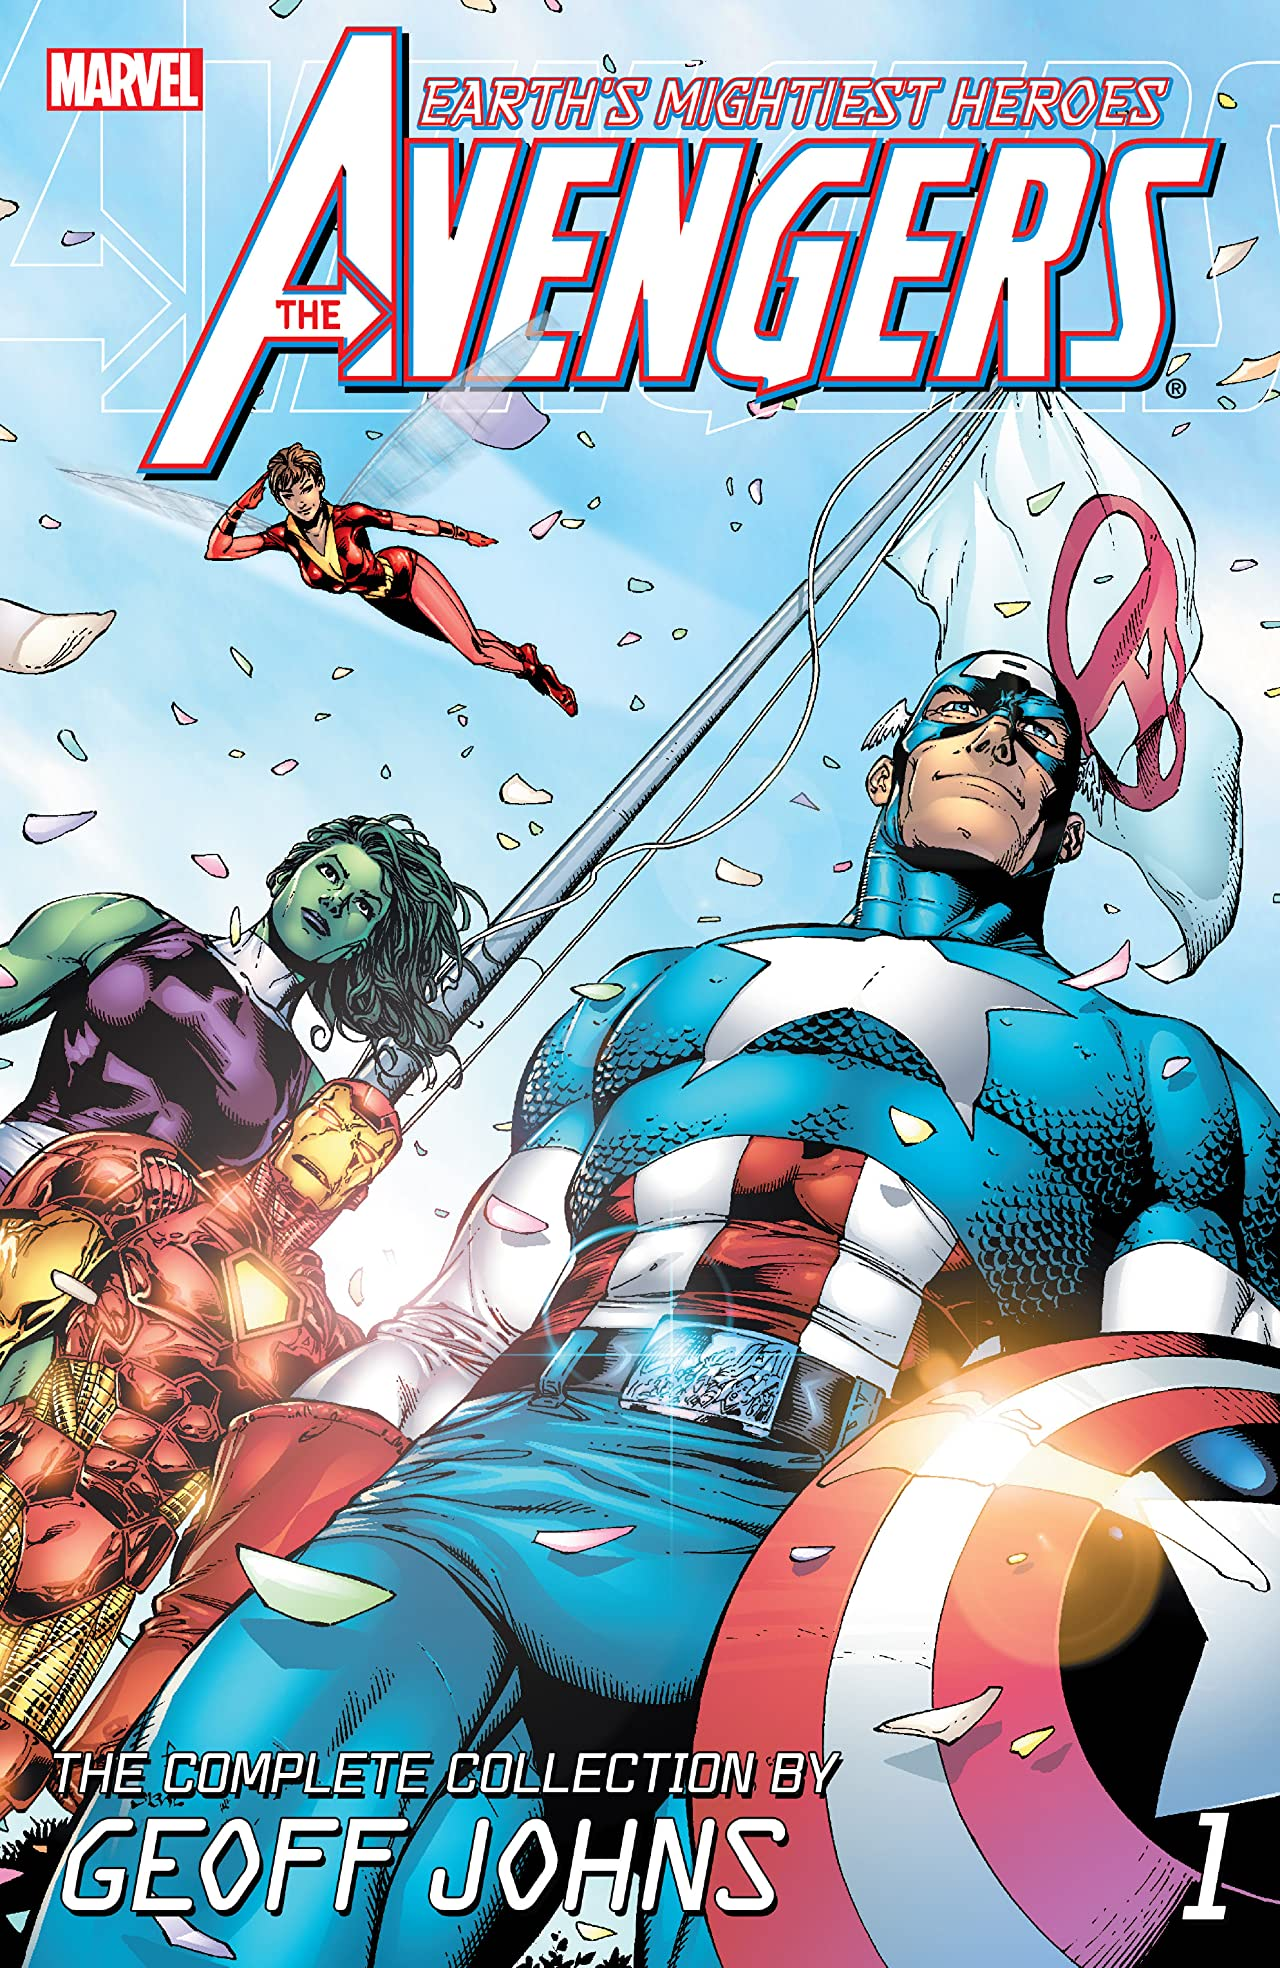 Avengers: The Complete Collection by Geoff Johns Vol. 1